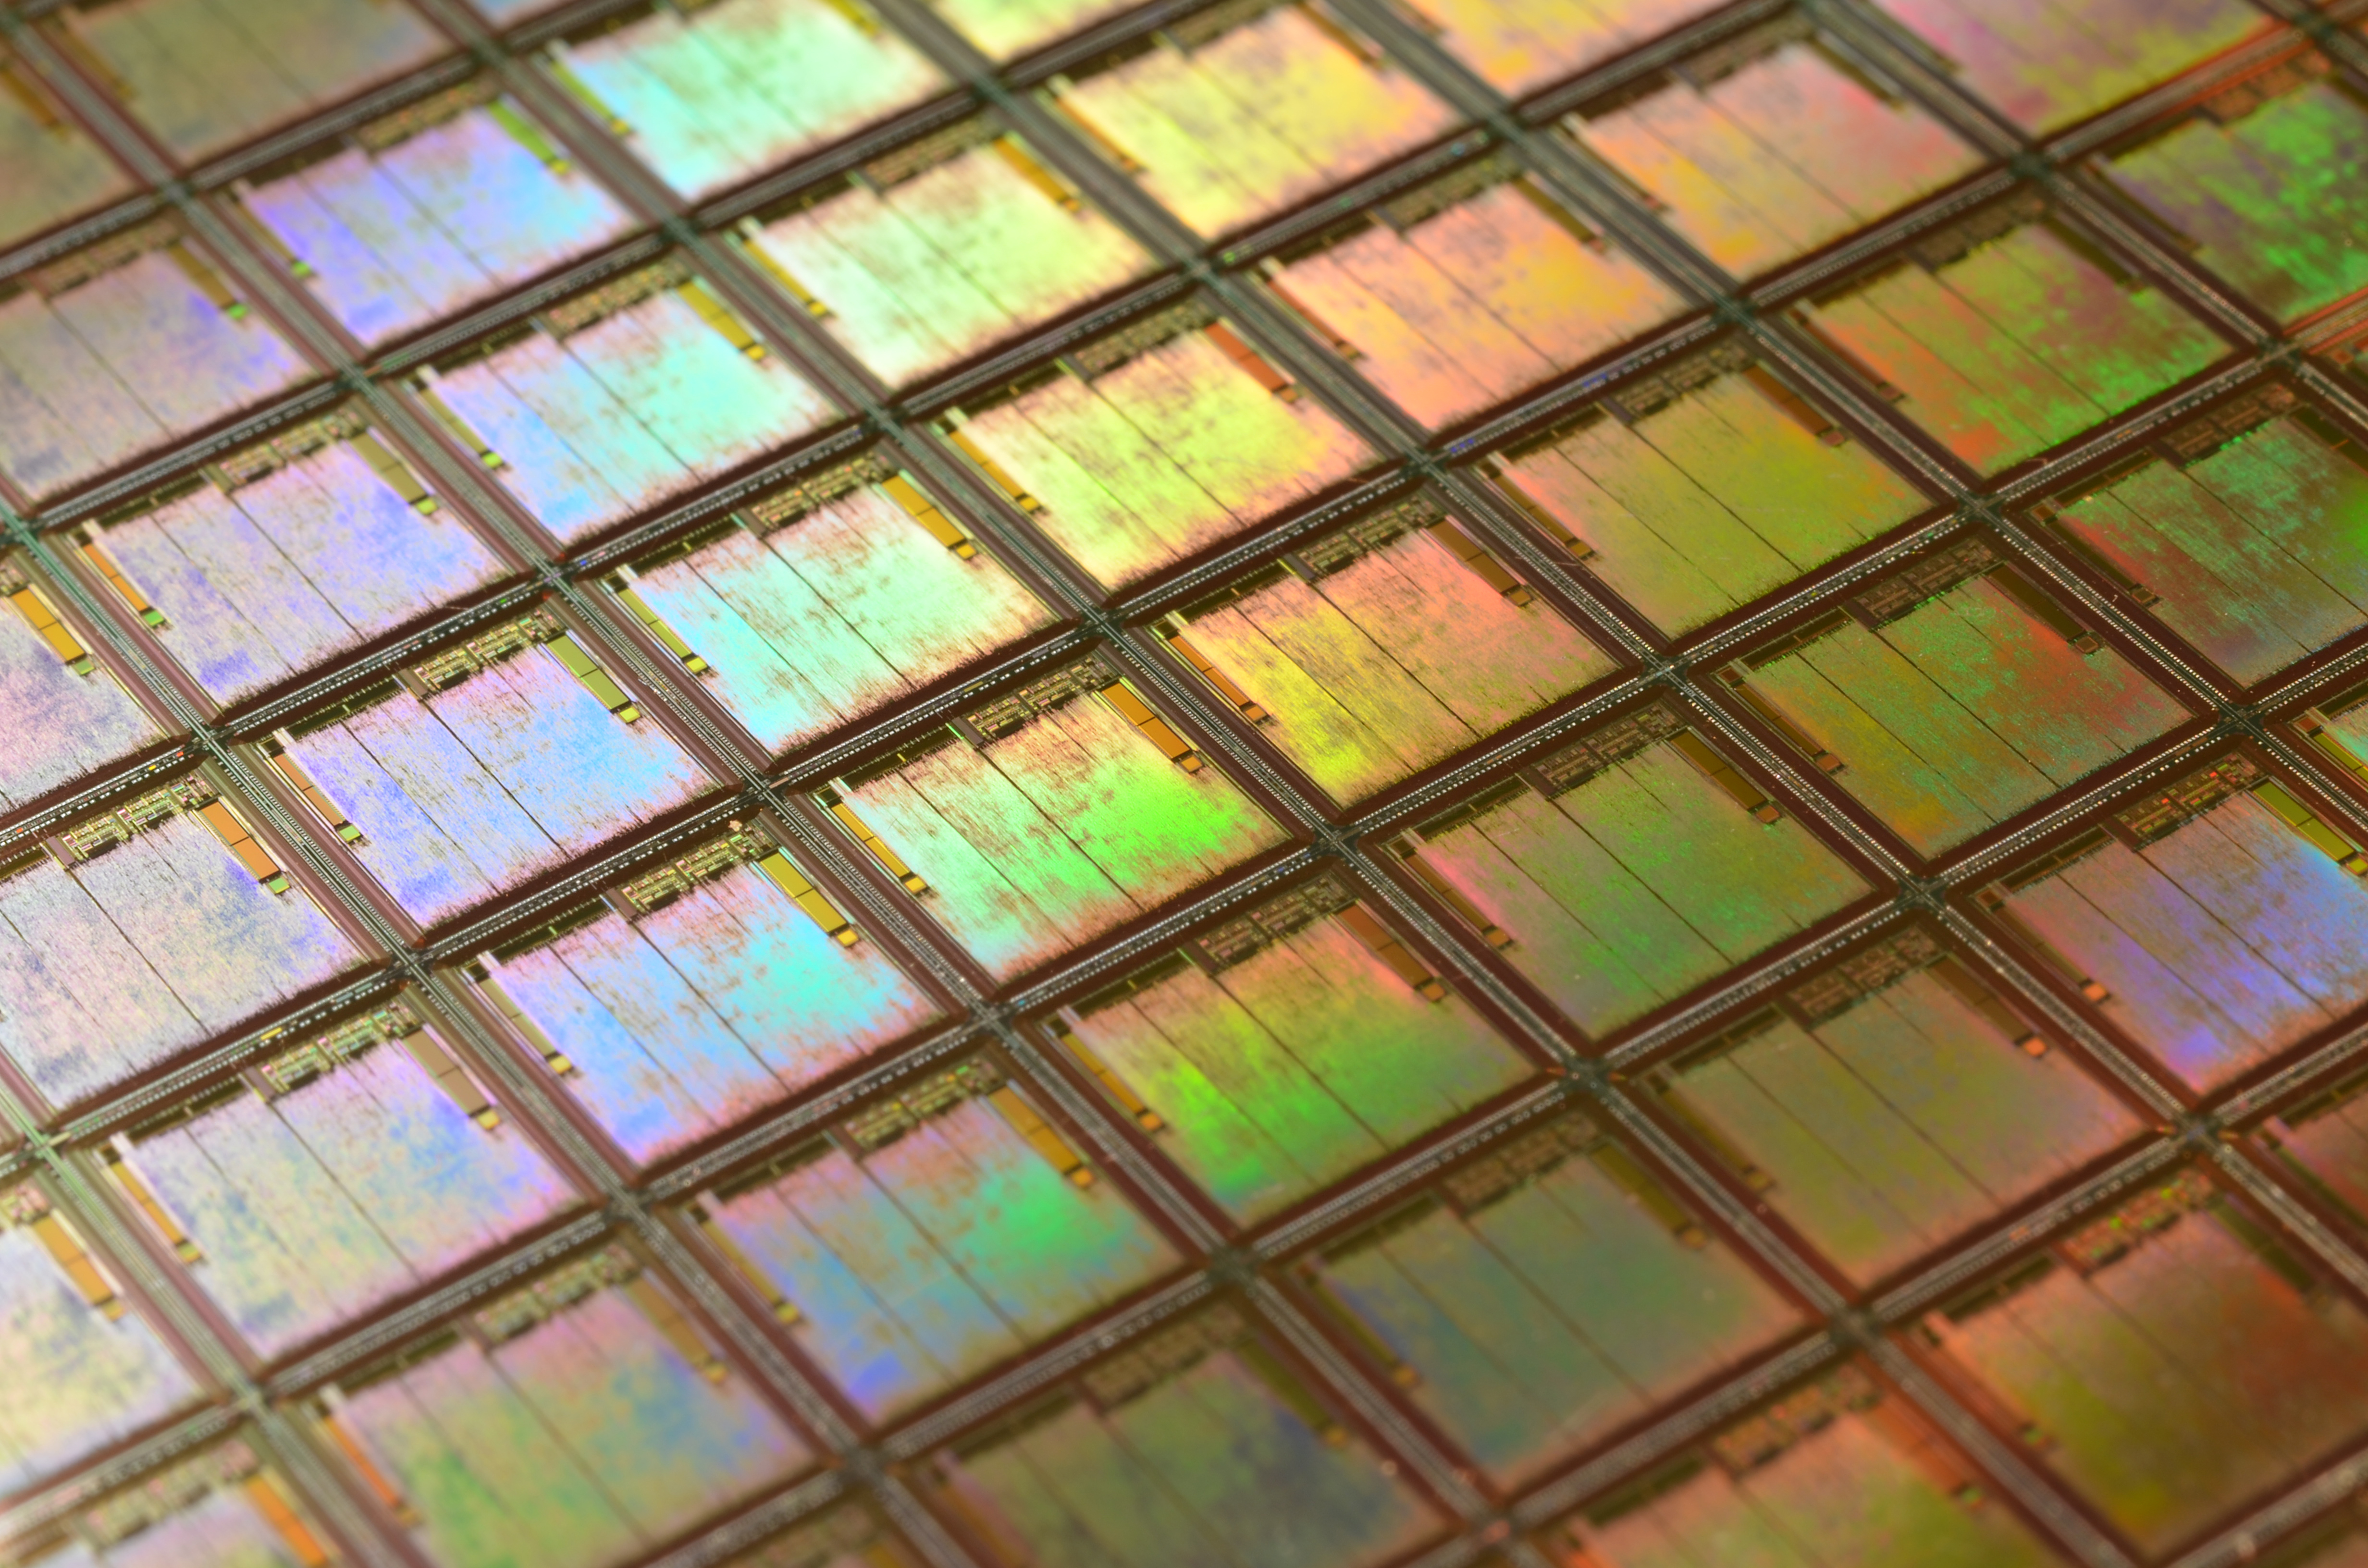 """""""This is a macro of a silicon wafer. Each square is a chip with microscopic transistors and circuits. Ordinarily, wafers like these are diced into their individual chips and the chips go into the processors that power our computers.\r\nSometimes, wafers have flaws and the manufacturers dispose of them instead. That\u2019s how I got mine. After visiting the tech museums in Silicon Valley, I was amazed at the beauty of silicon wafers, so I started collecting and photographing them.\r\nLike fractals and flowers, the closer you get to them, the more amazing details there are to see."""""""